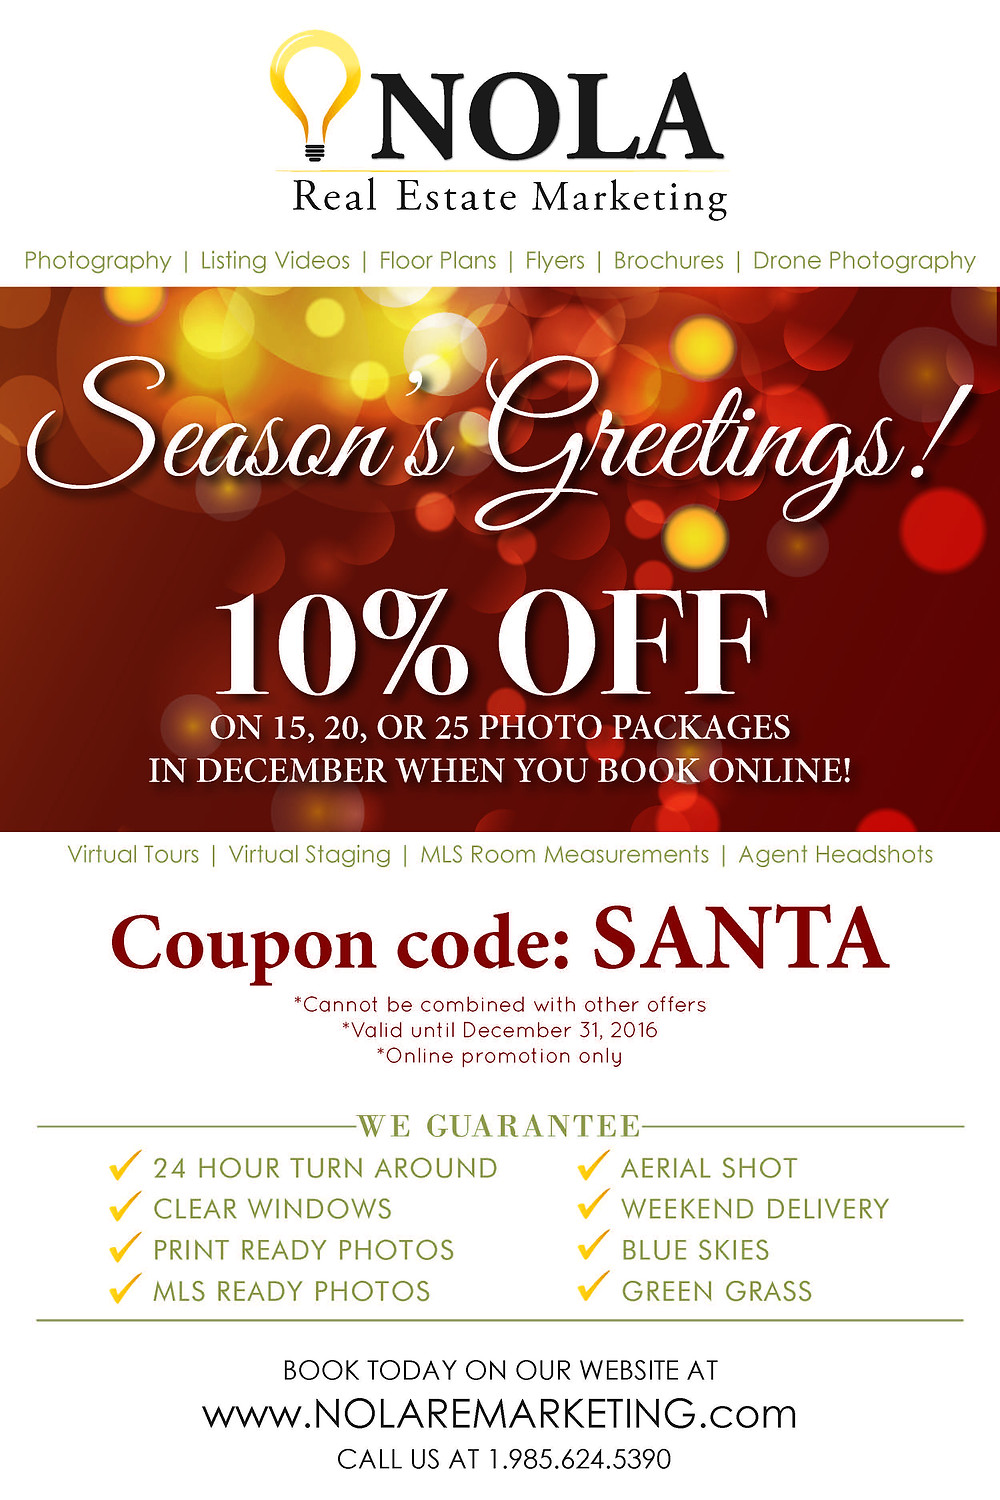 Seasons Greetings: Enjoy 10% Off